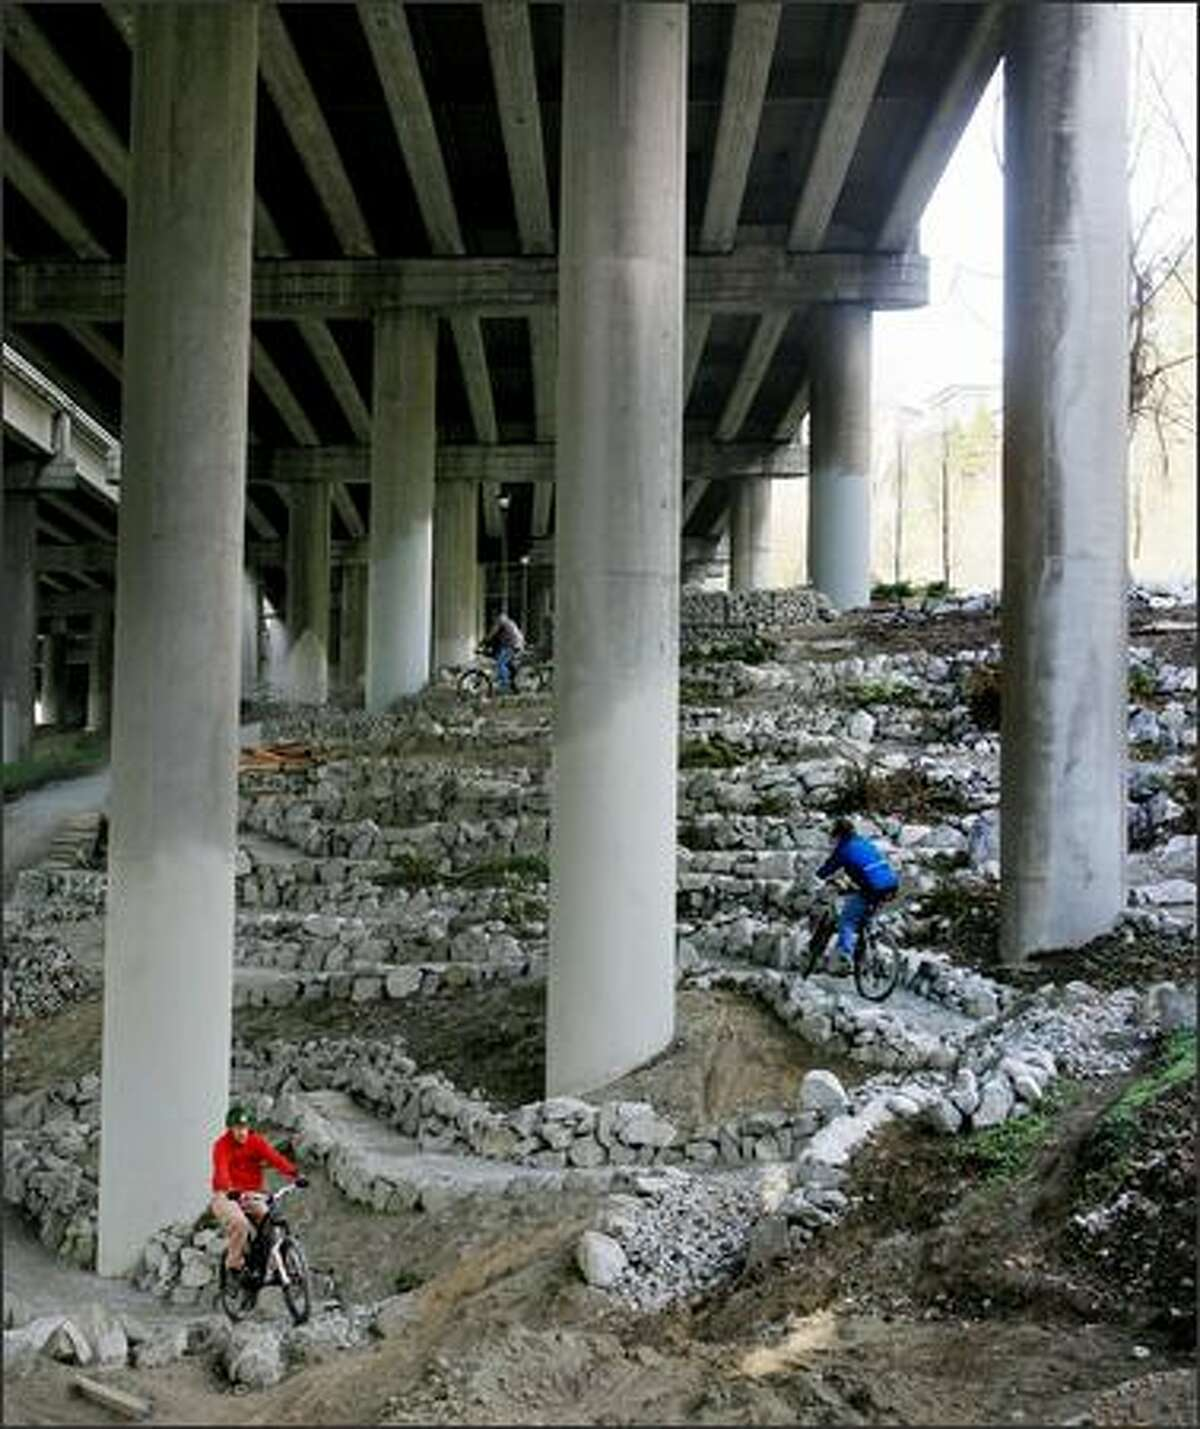 After a volunteer work party, members of the Backcountry Bicycle Trails Club ride the trail system they're constructing in Colonnade Park under Interstate 5 in Seattle's Eastlake neighborhood.